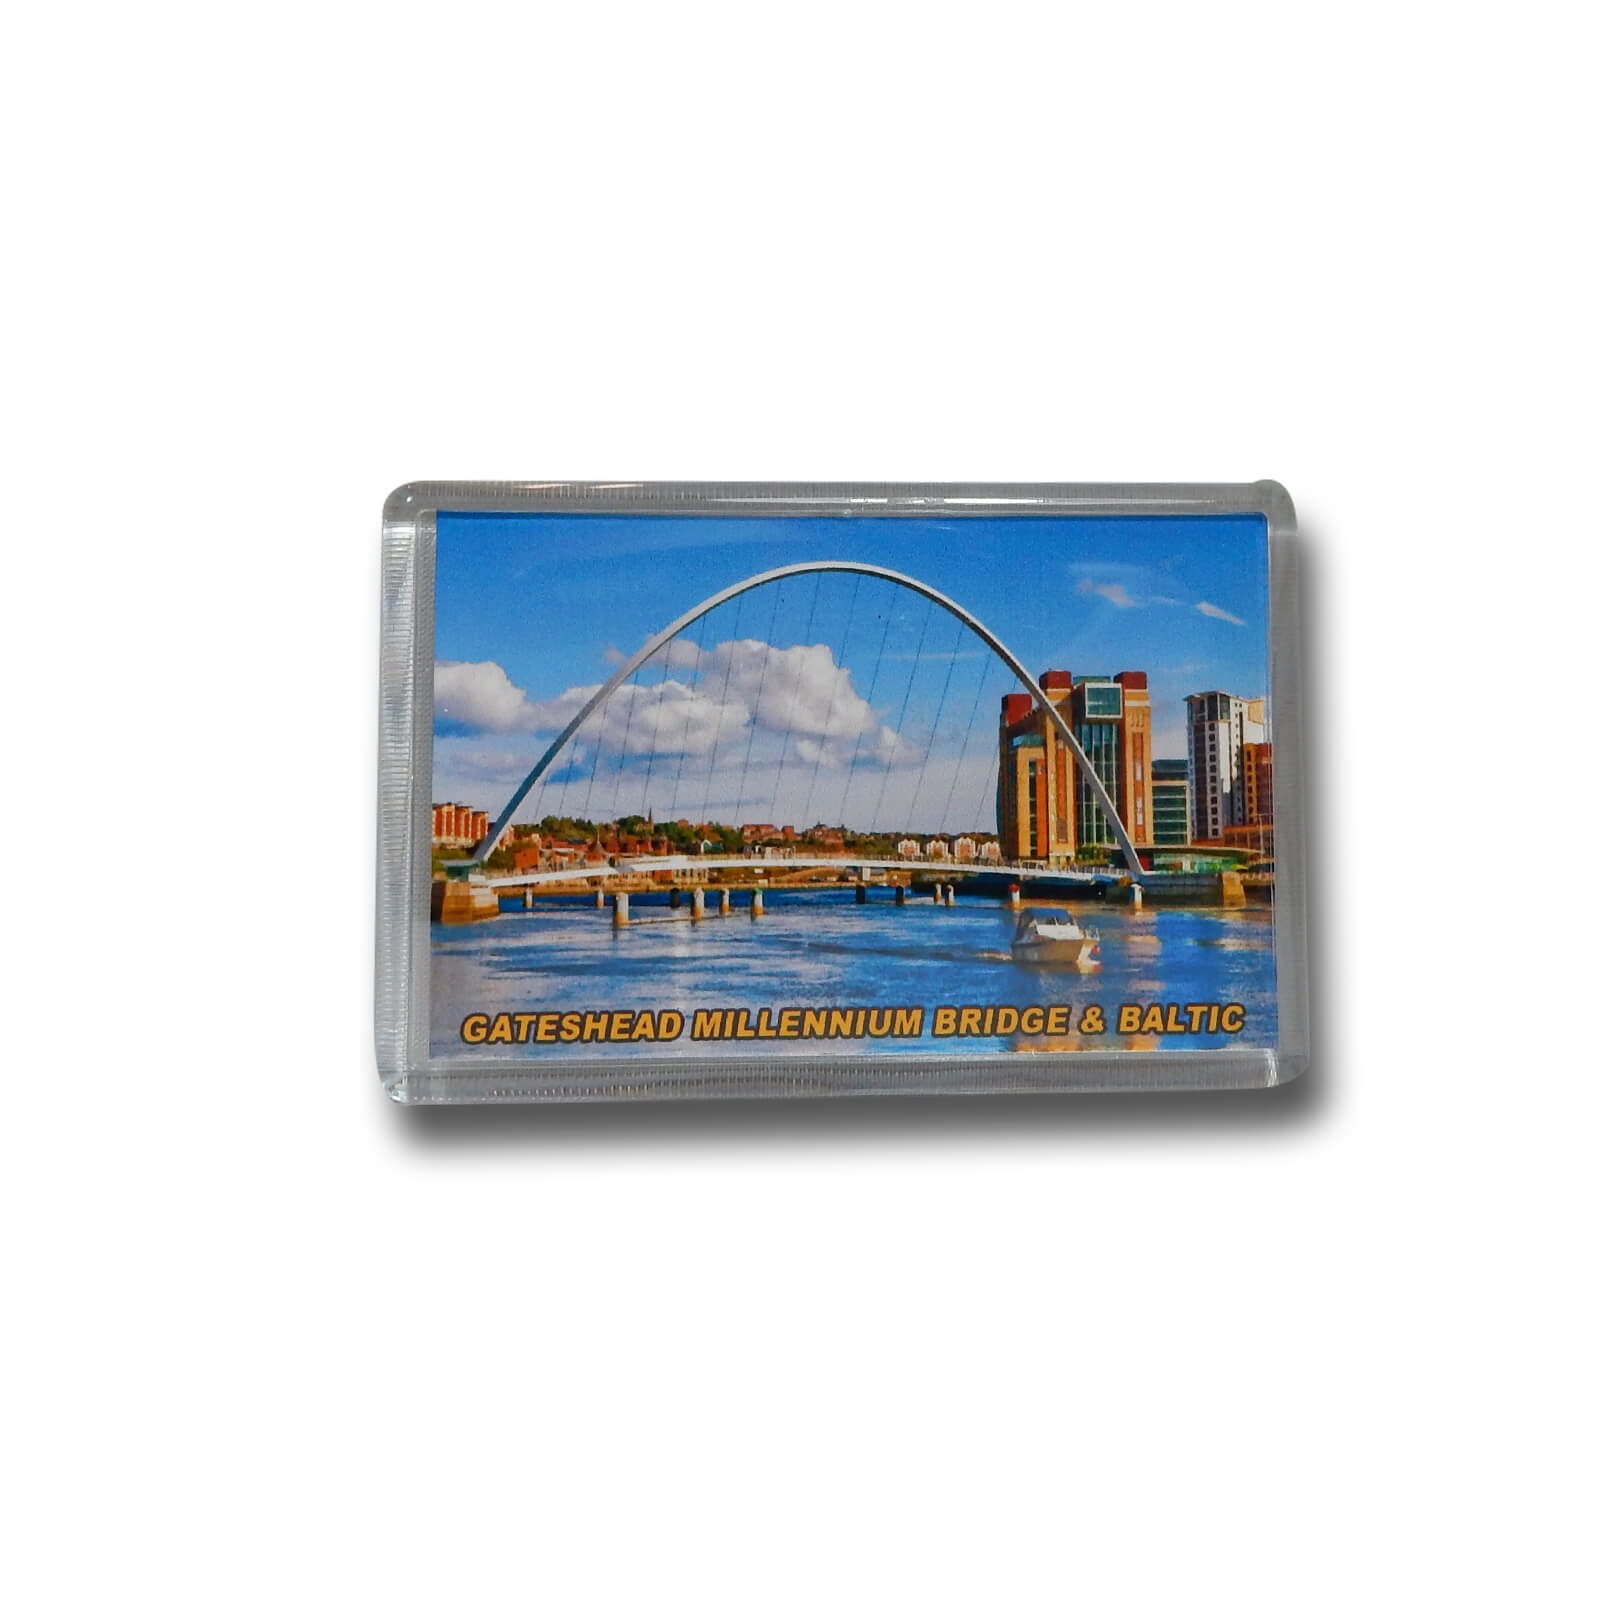 Gateshead Millennium Bridge & Baltic Photo Magnet